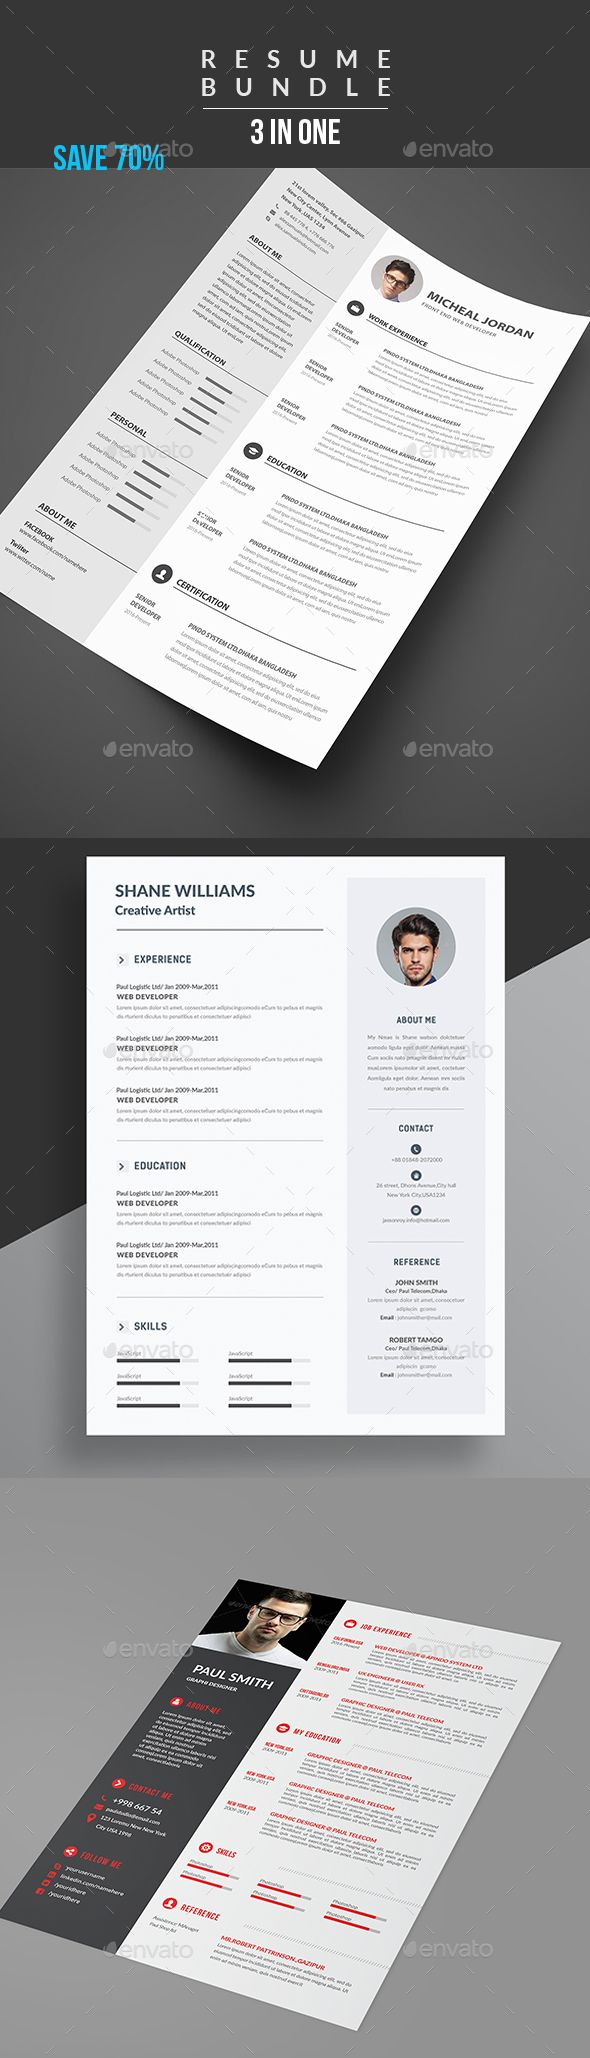 Cv Templates Design%0A Resume Bundle